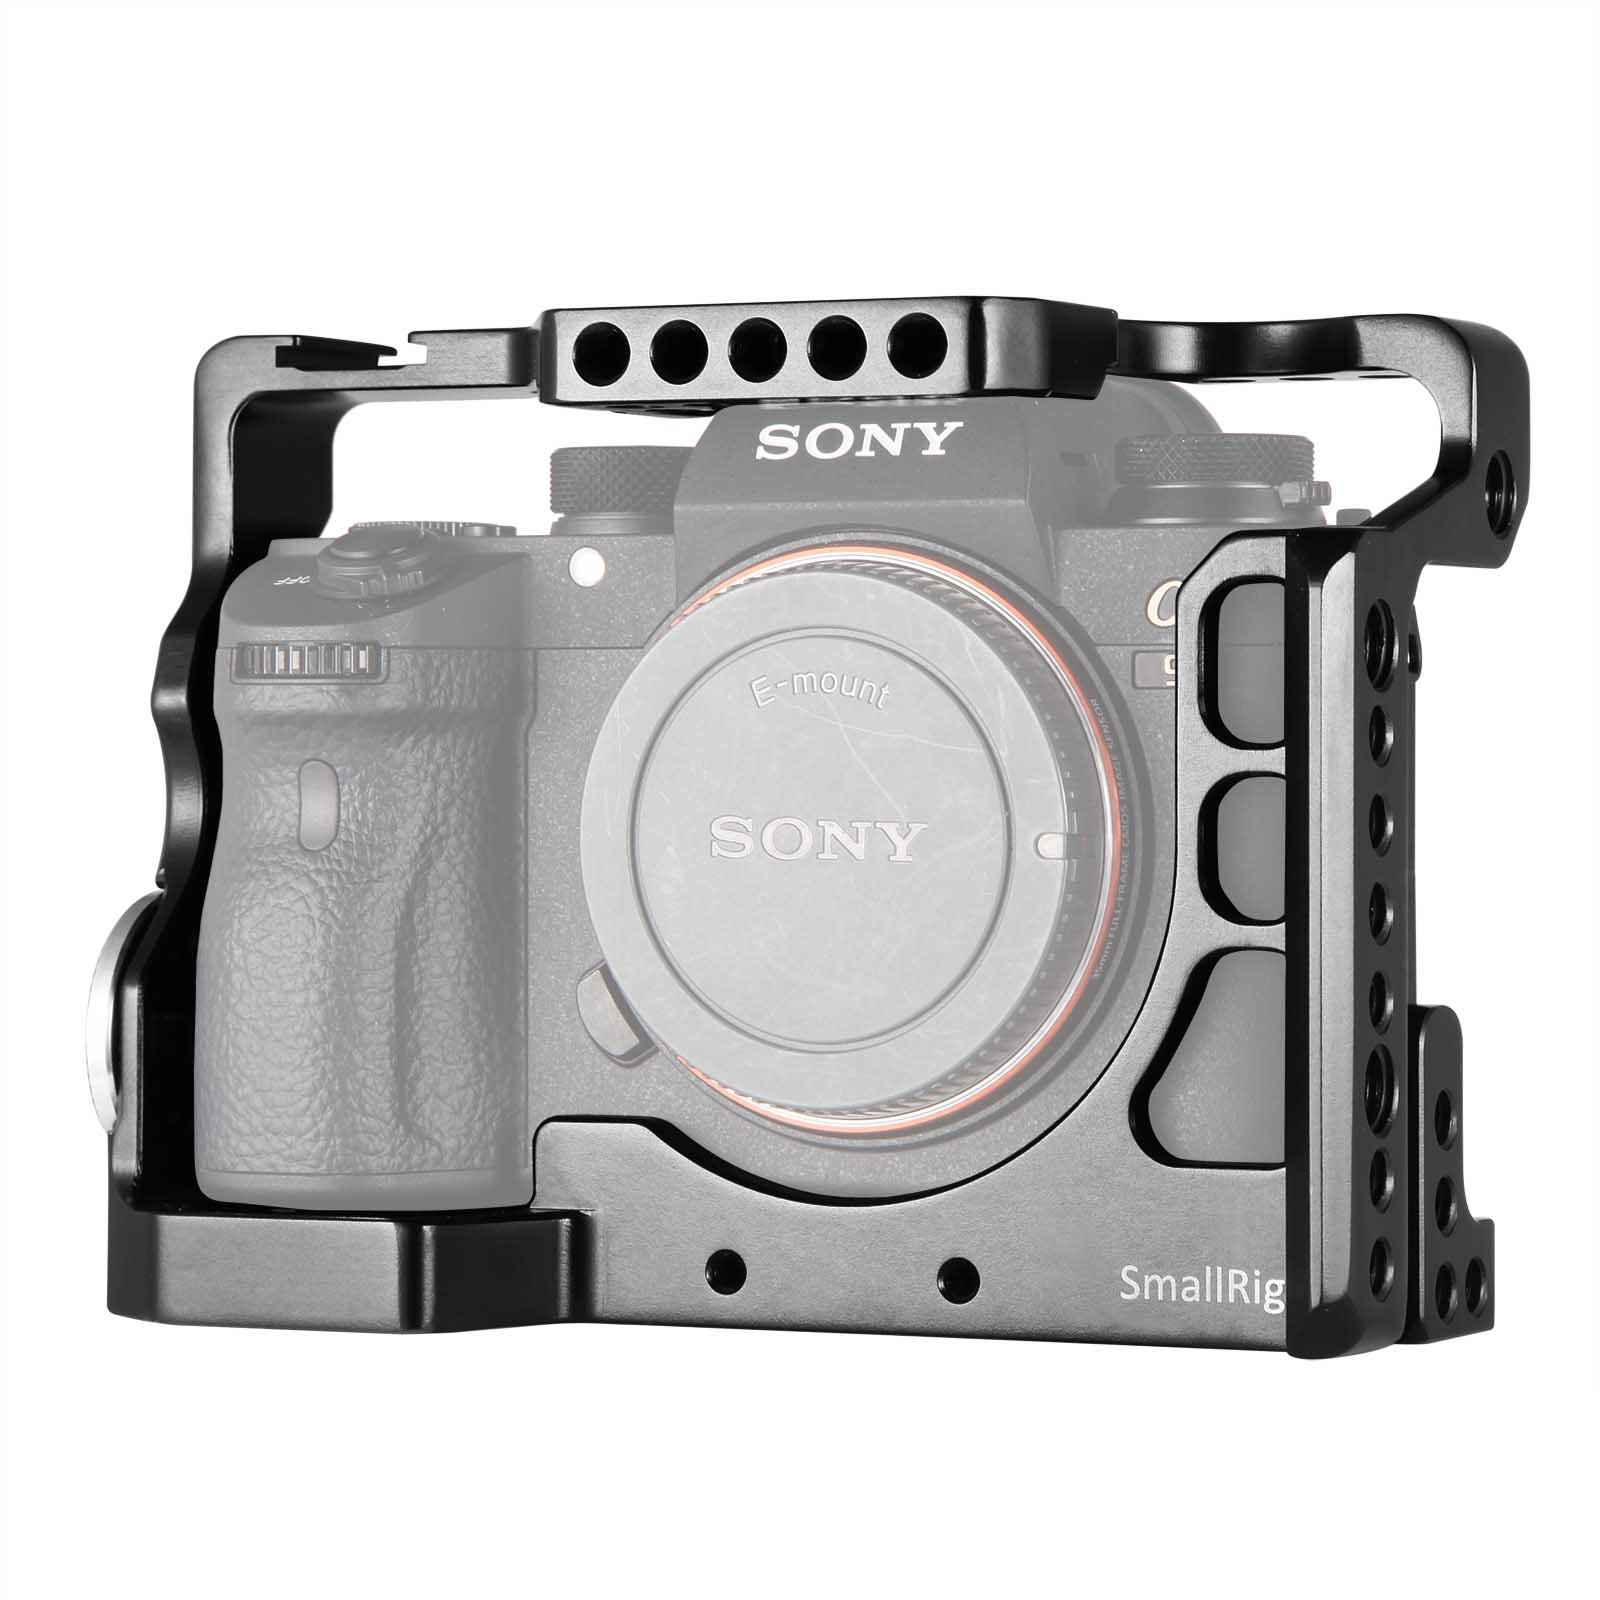 SMALLRIG 2013 Cage for Sony A9 Camera with Cold Shoe and ...